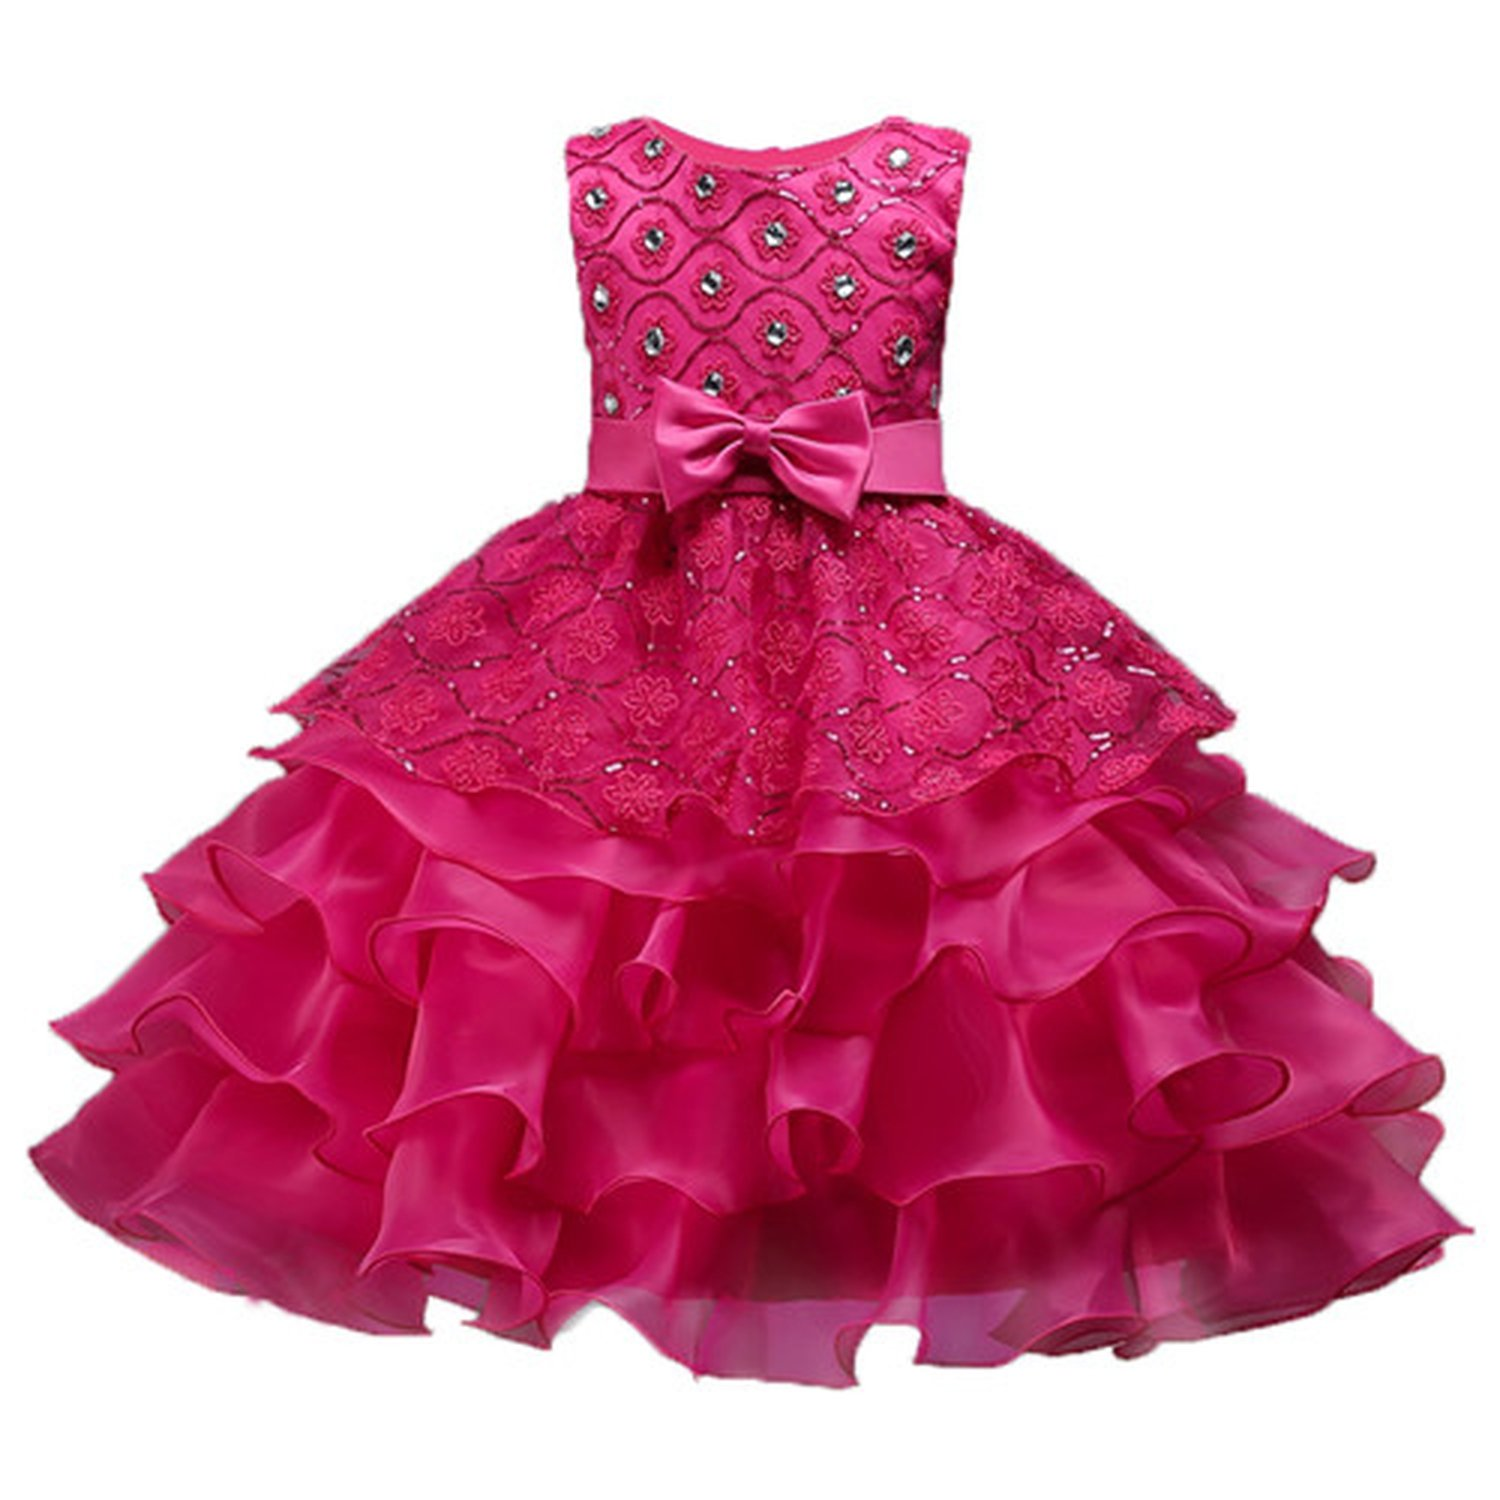 Knee Length Christmas Lace Ruffles Flower Girl Dresses Crystal O-Neck Pageant Dresses for Girls,Rose red,Child-6